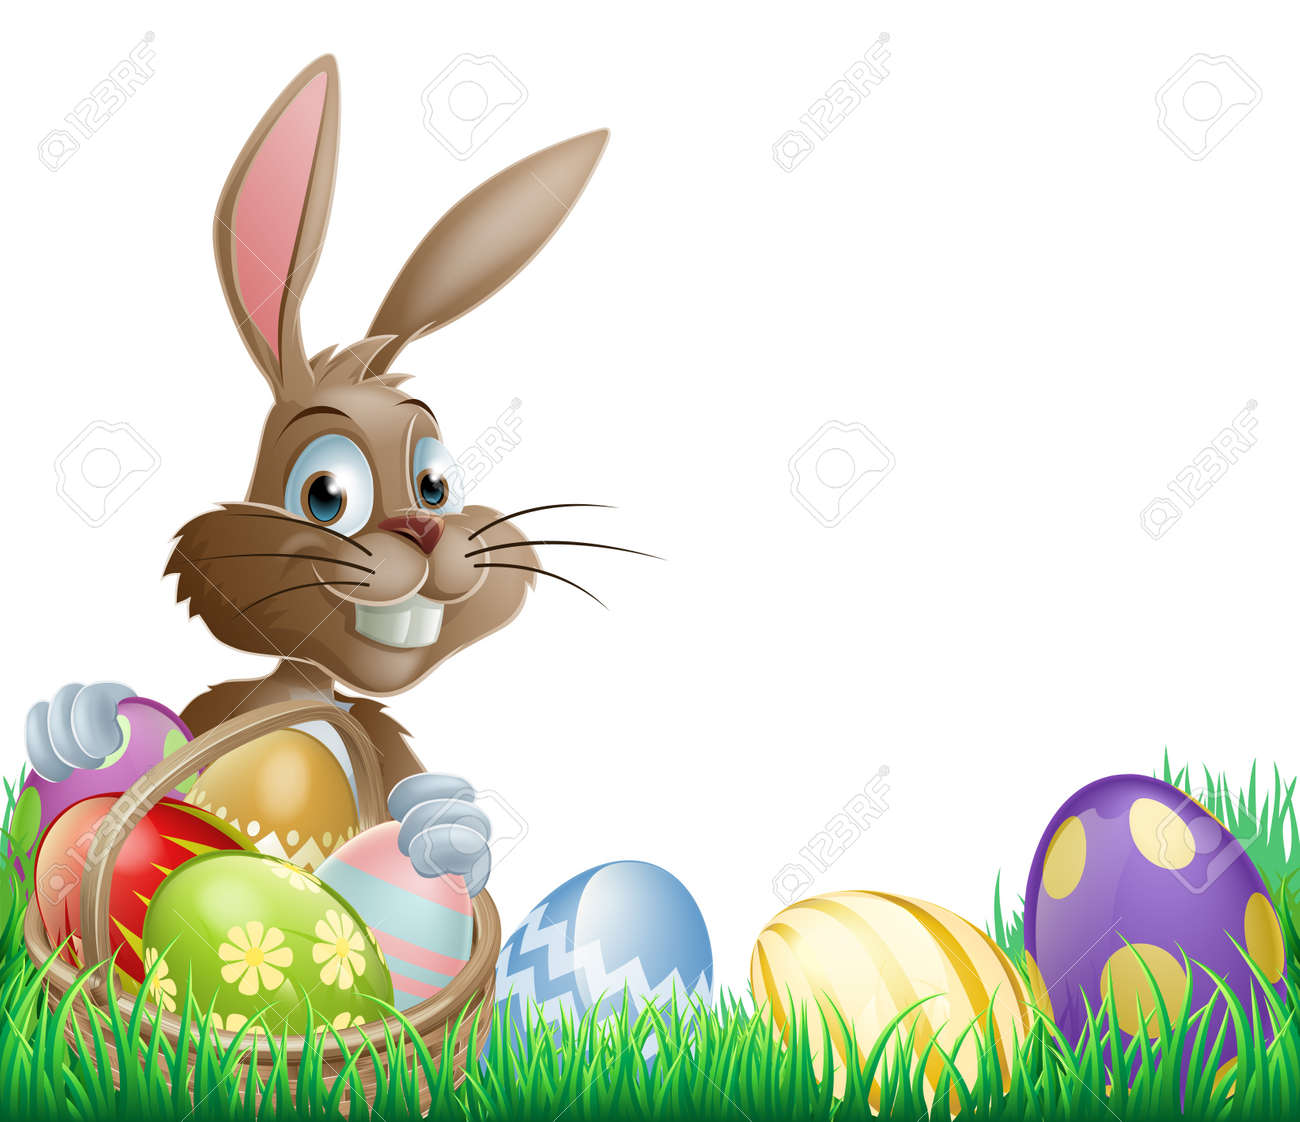 isolated easter footer design with a bunny rabbit and decorated